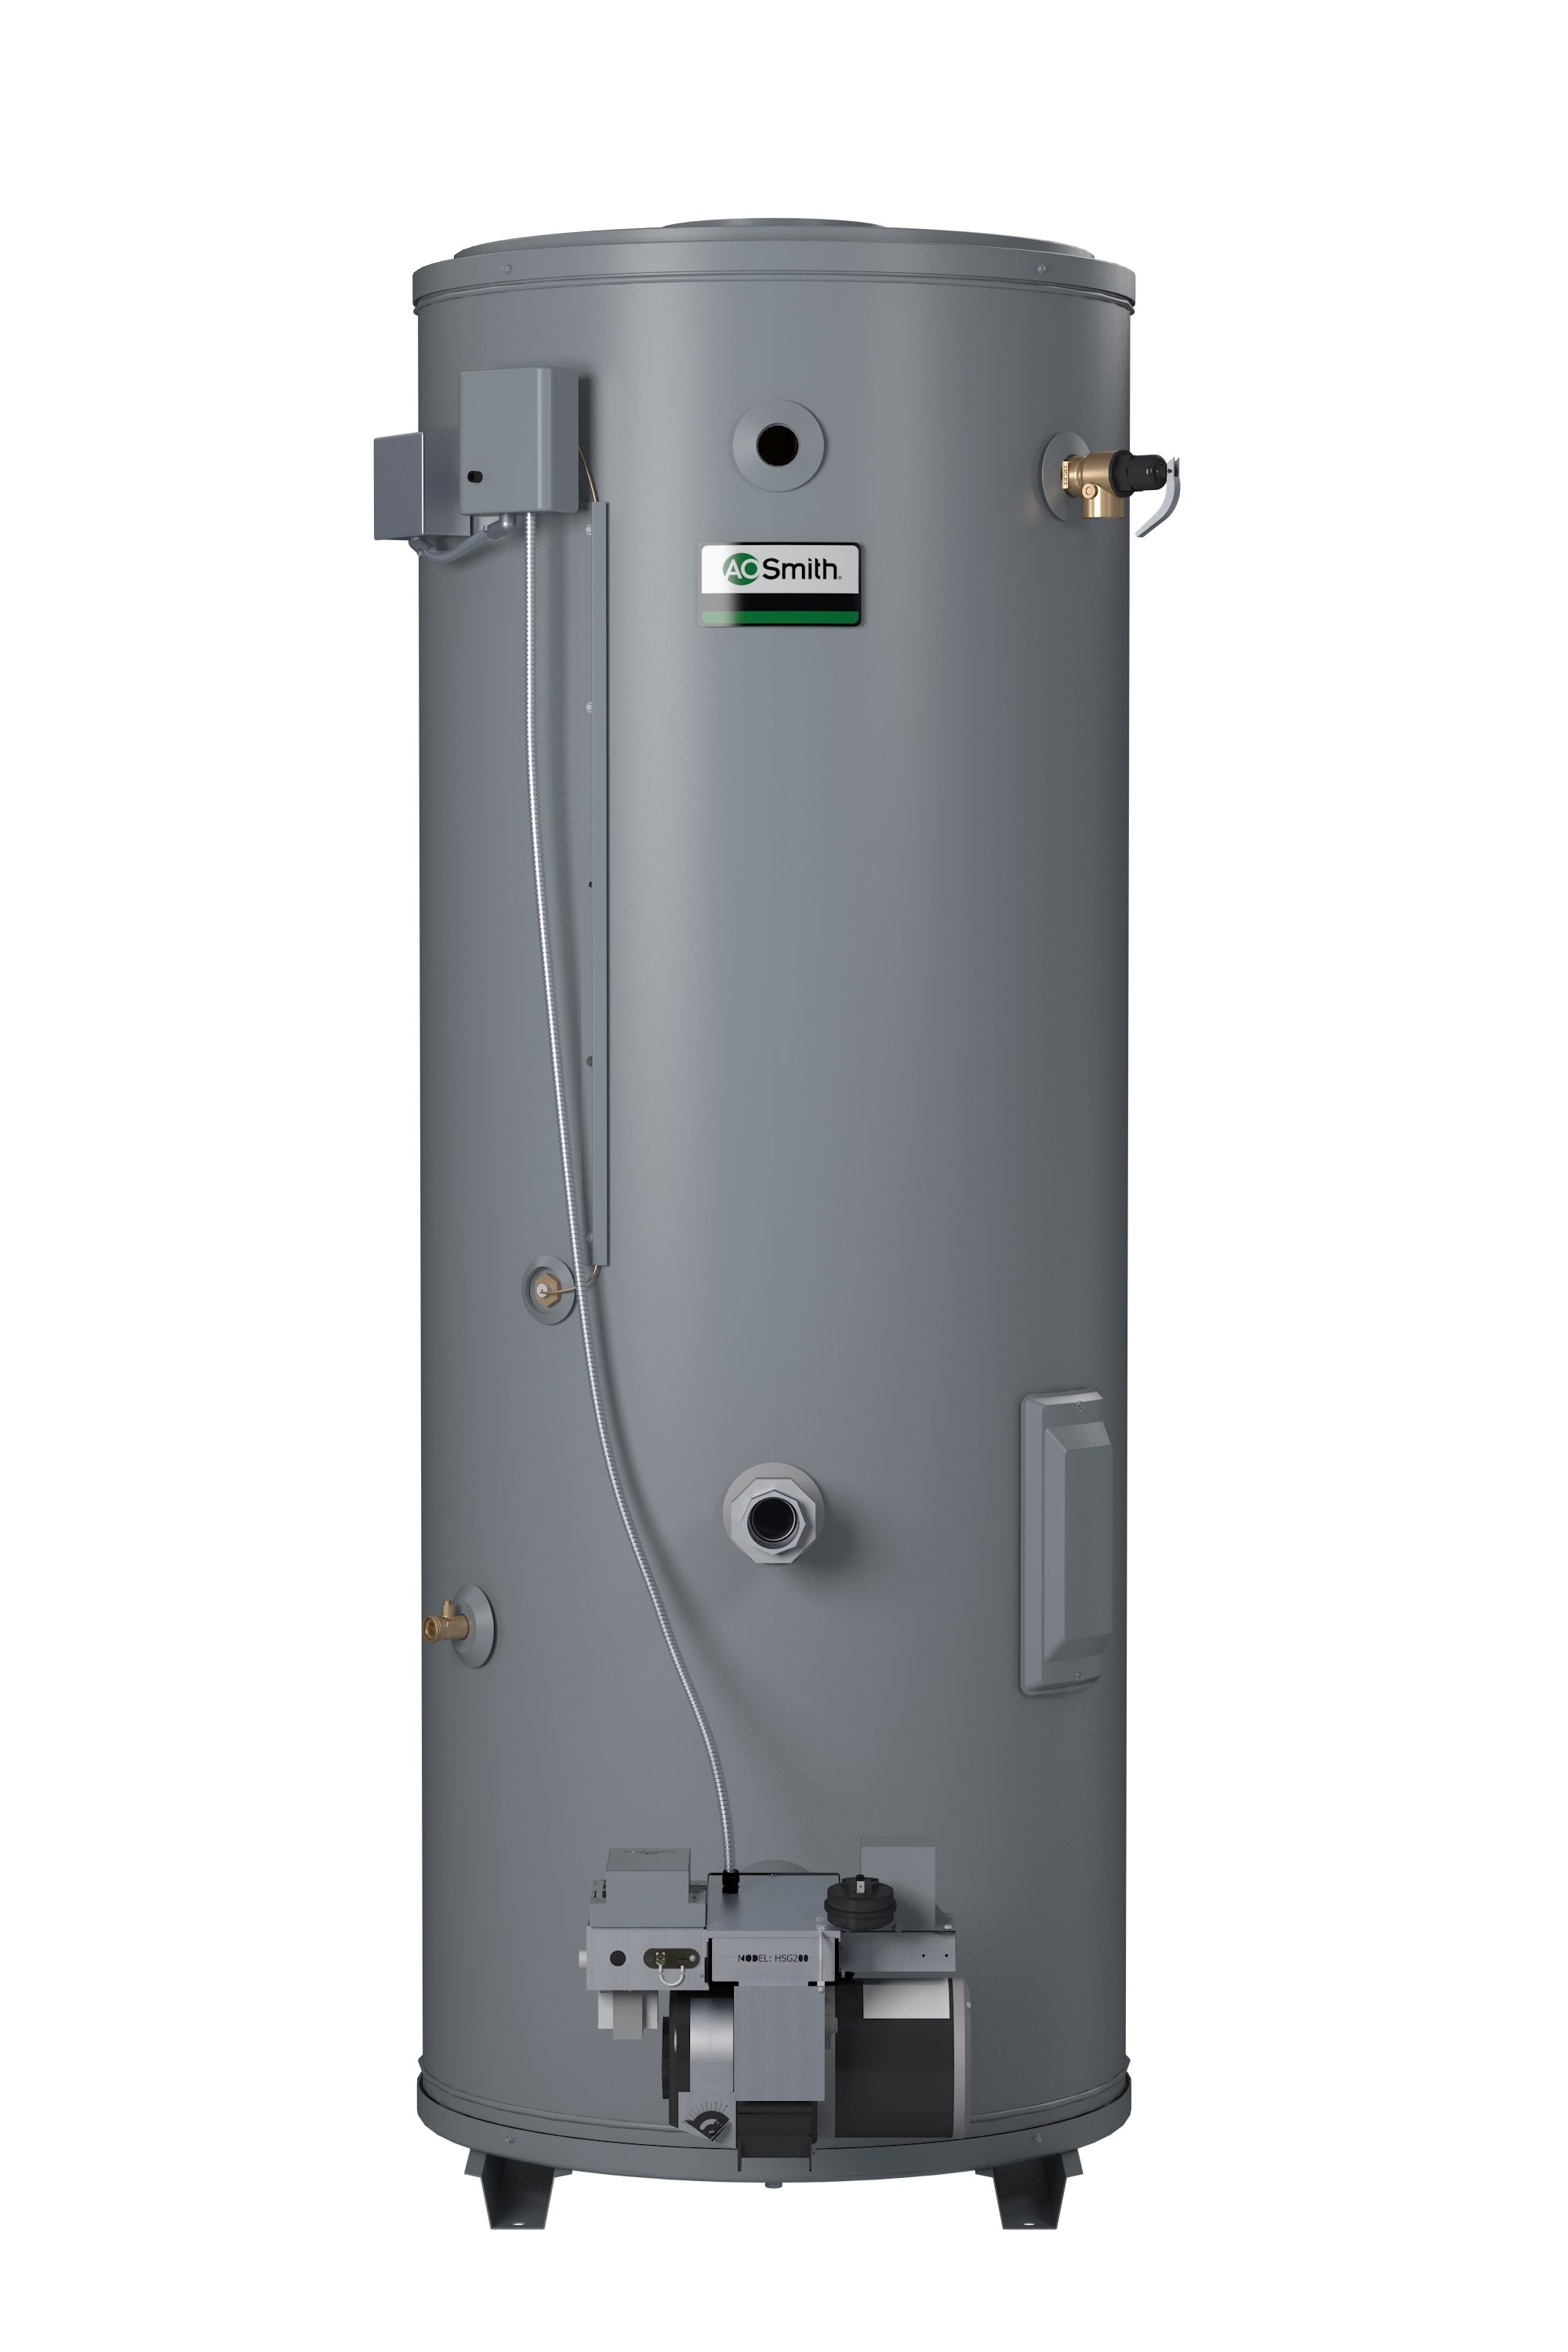 Conservationist 174 Small Volume Cof Water Heaters